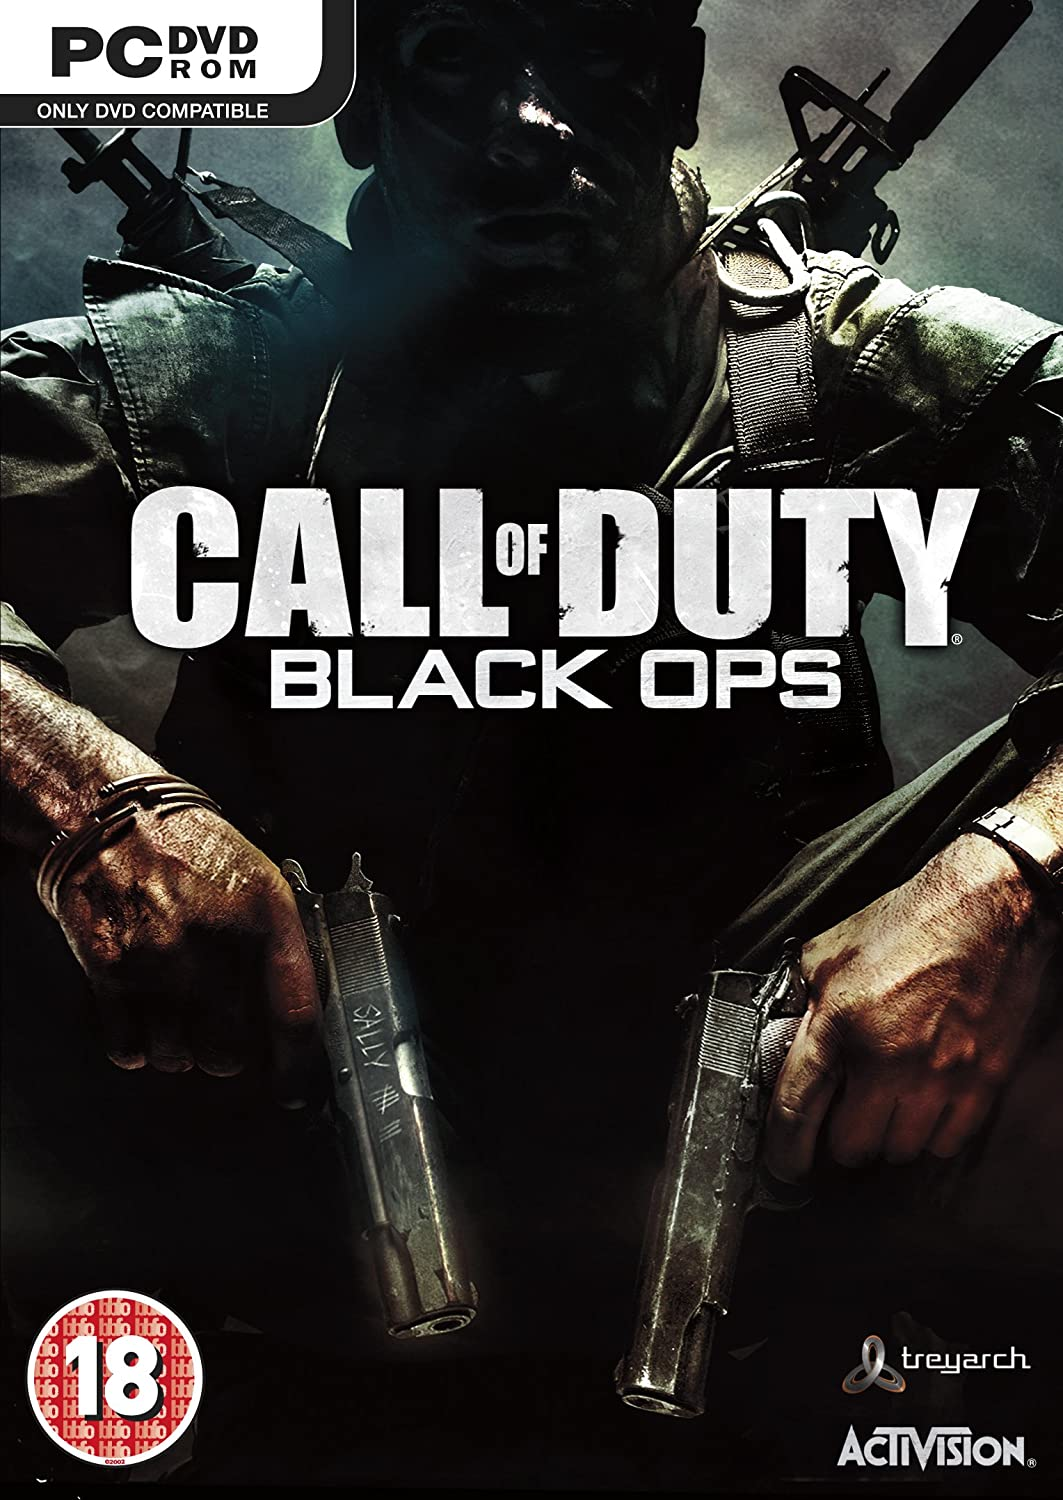 Image result for Call of Duty Black Ops cover pc